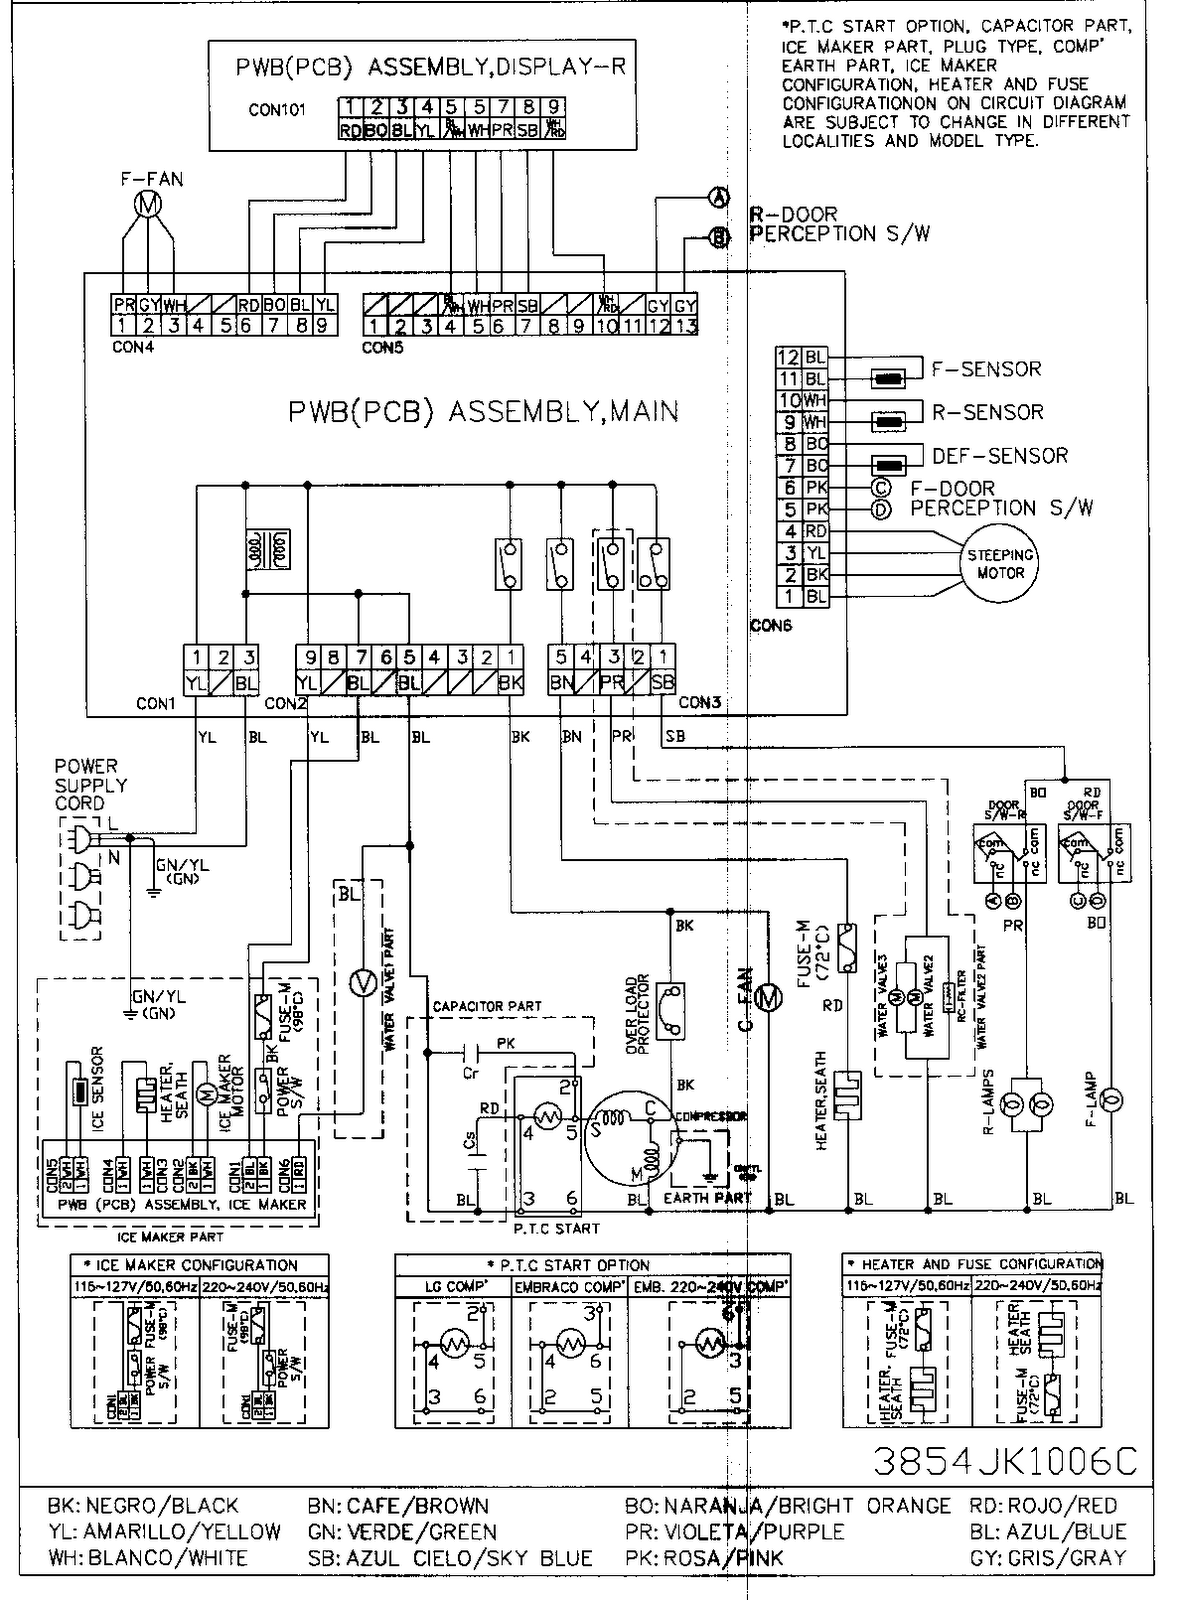 schematic wiring diagram of a refrigerator the wiring diagram wiring diagram lg refrigerator wiring wiring diagrams for schematic